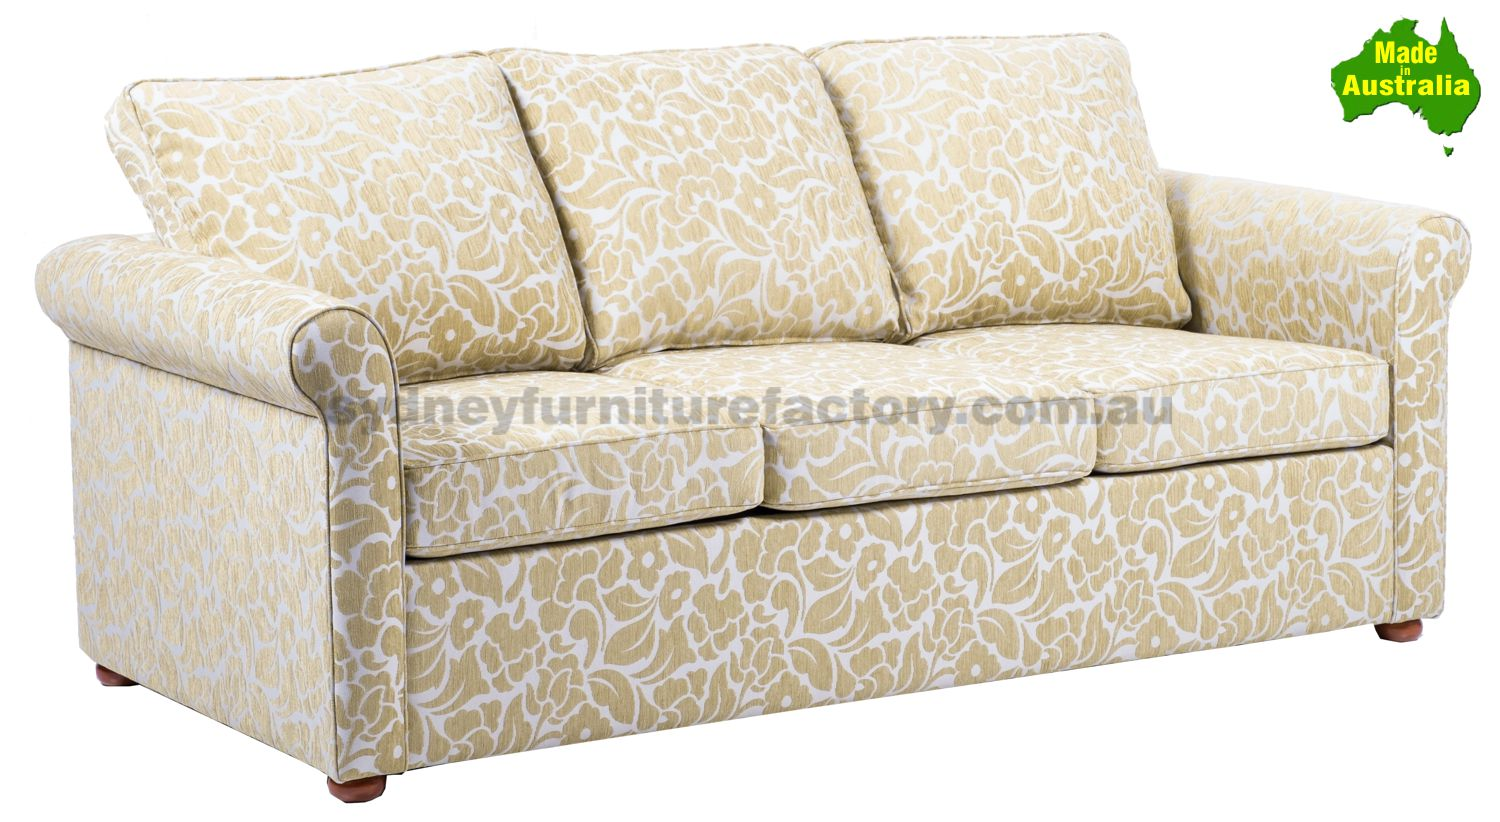 Oxford Queen Size Sofa Bed With Gel Inner Spring Mattress Sydney